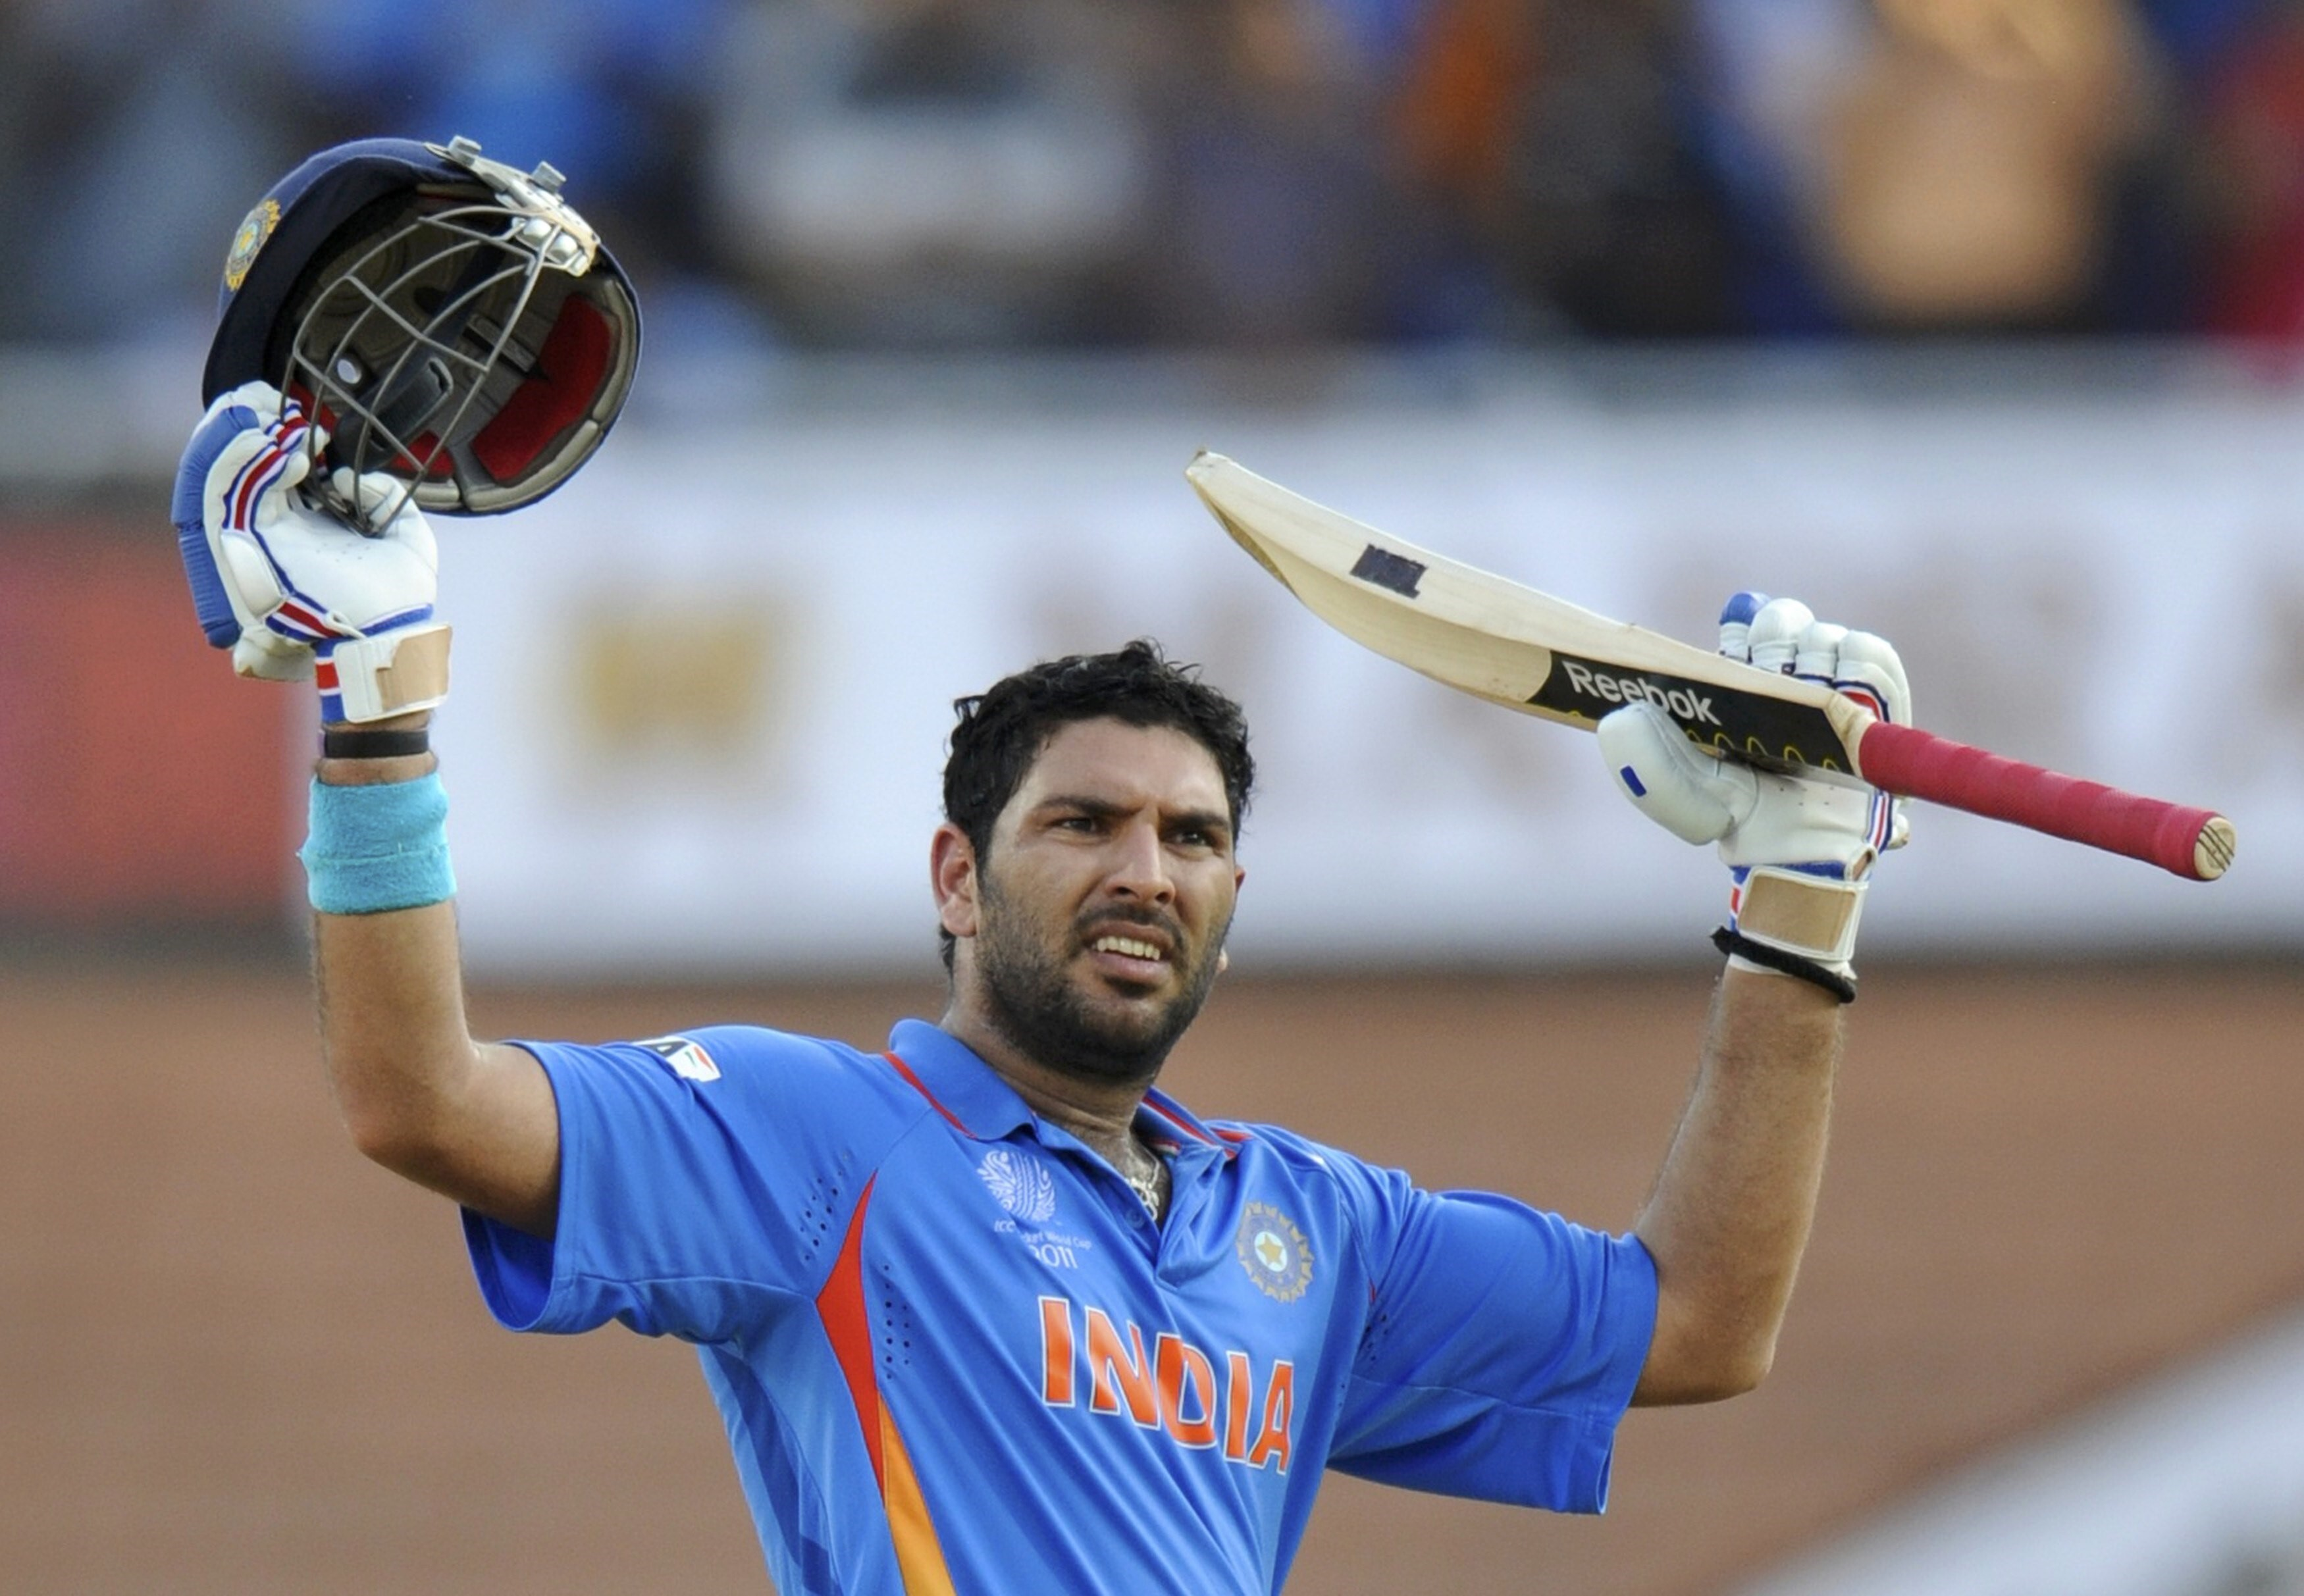 Yuvraj Singh Indian Cricket Player After Century In One Day